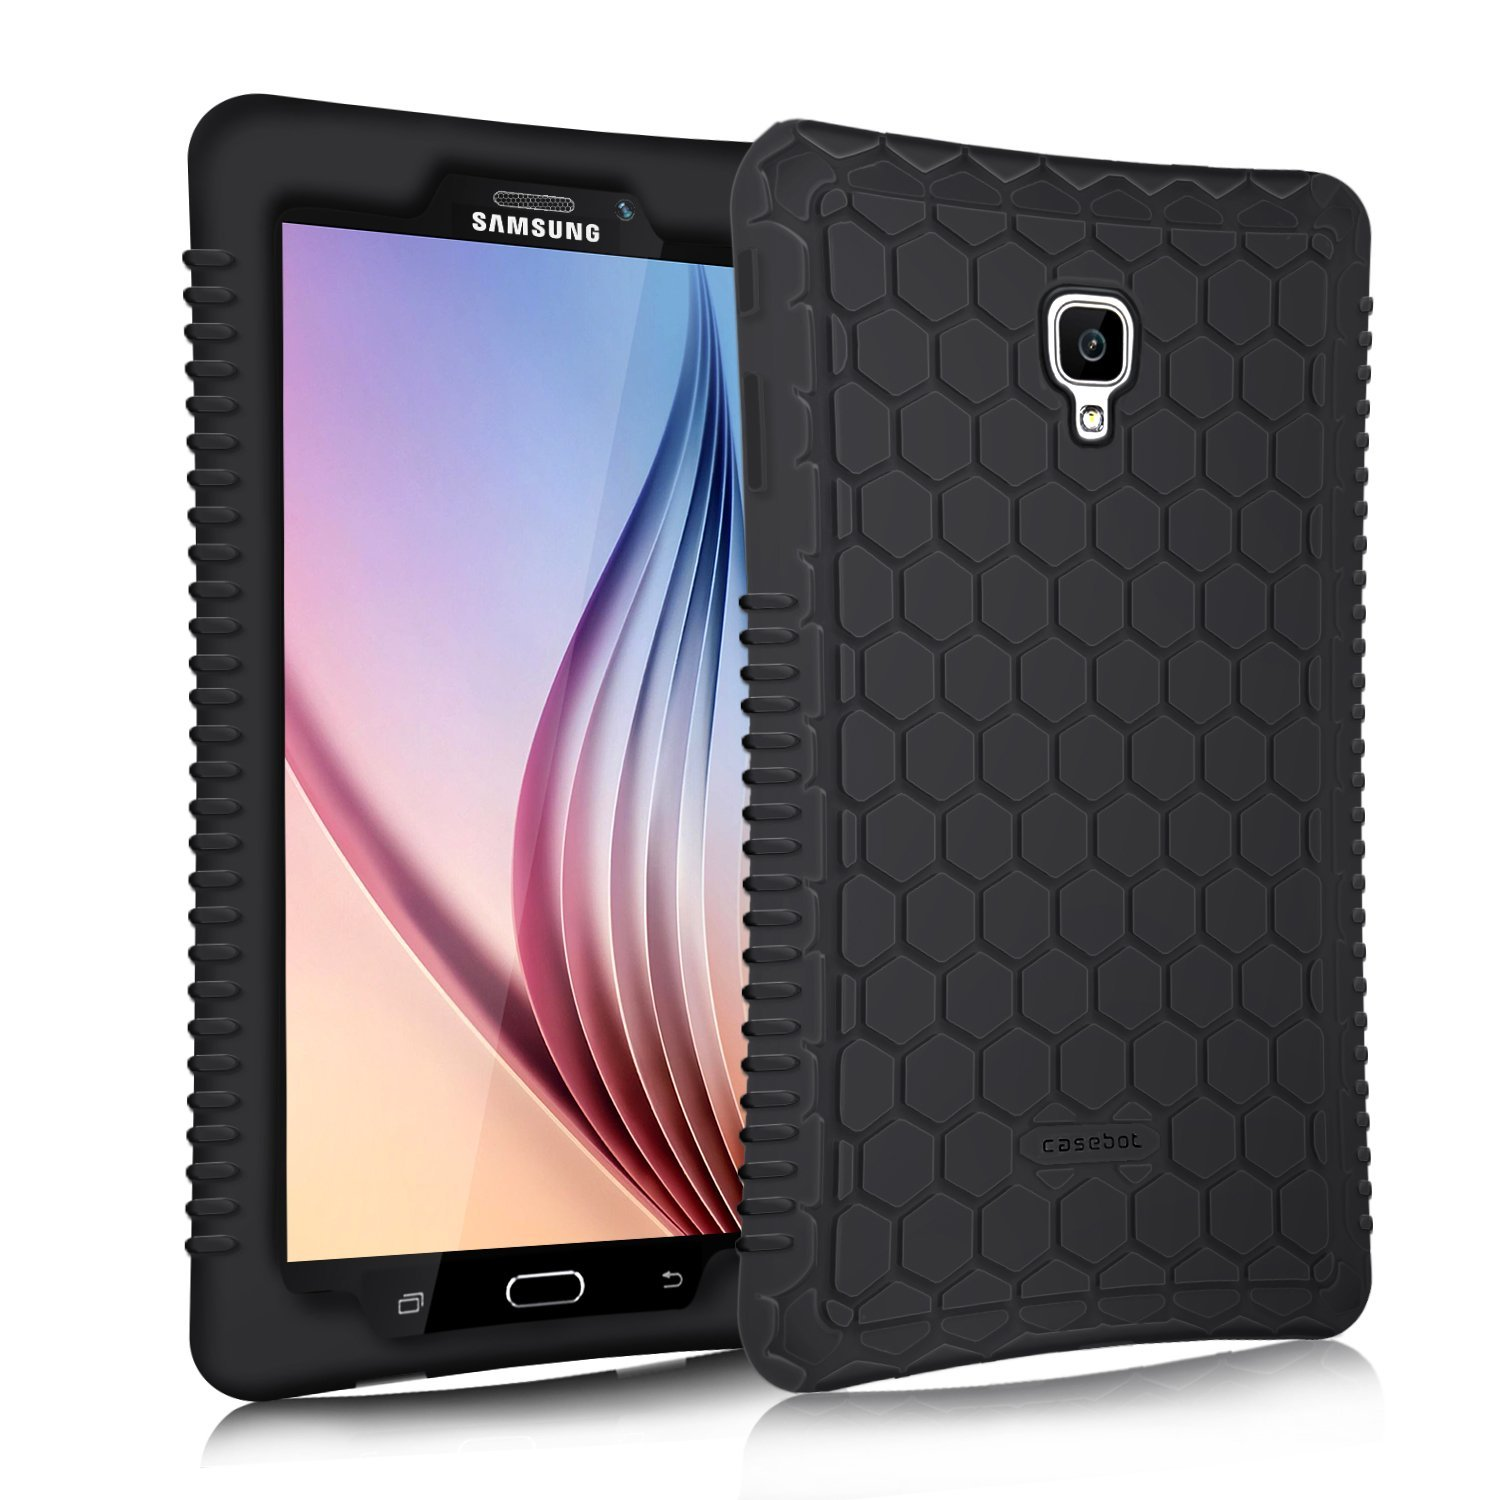 Fintie Samsung Galaxy Tab A 8.0 2017 Case, [Anti Slip] [Kids Friendly] Light Weight Shock Proof Silicone Cover Black